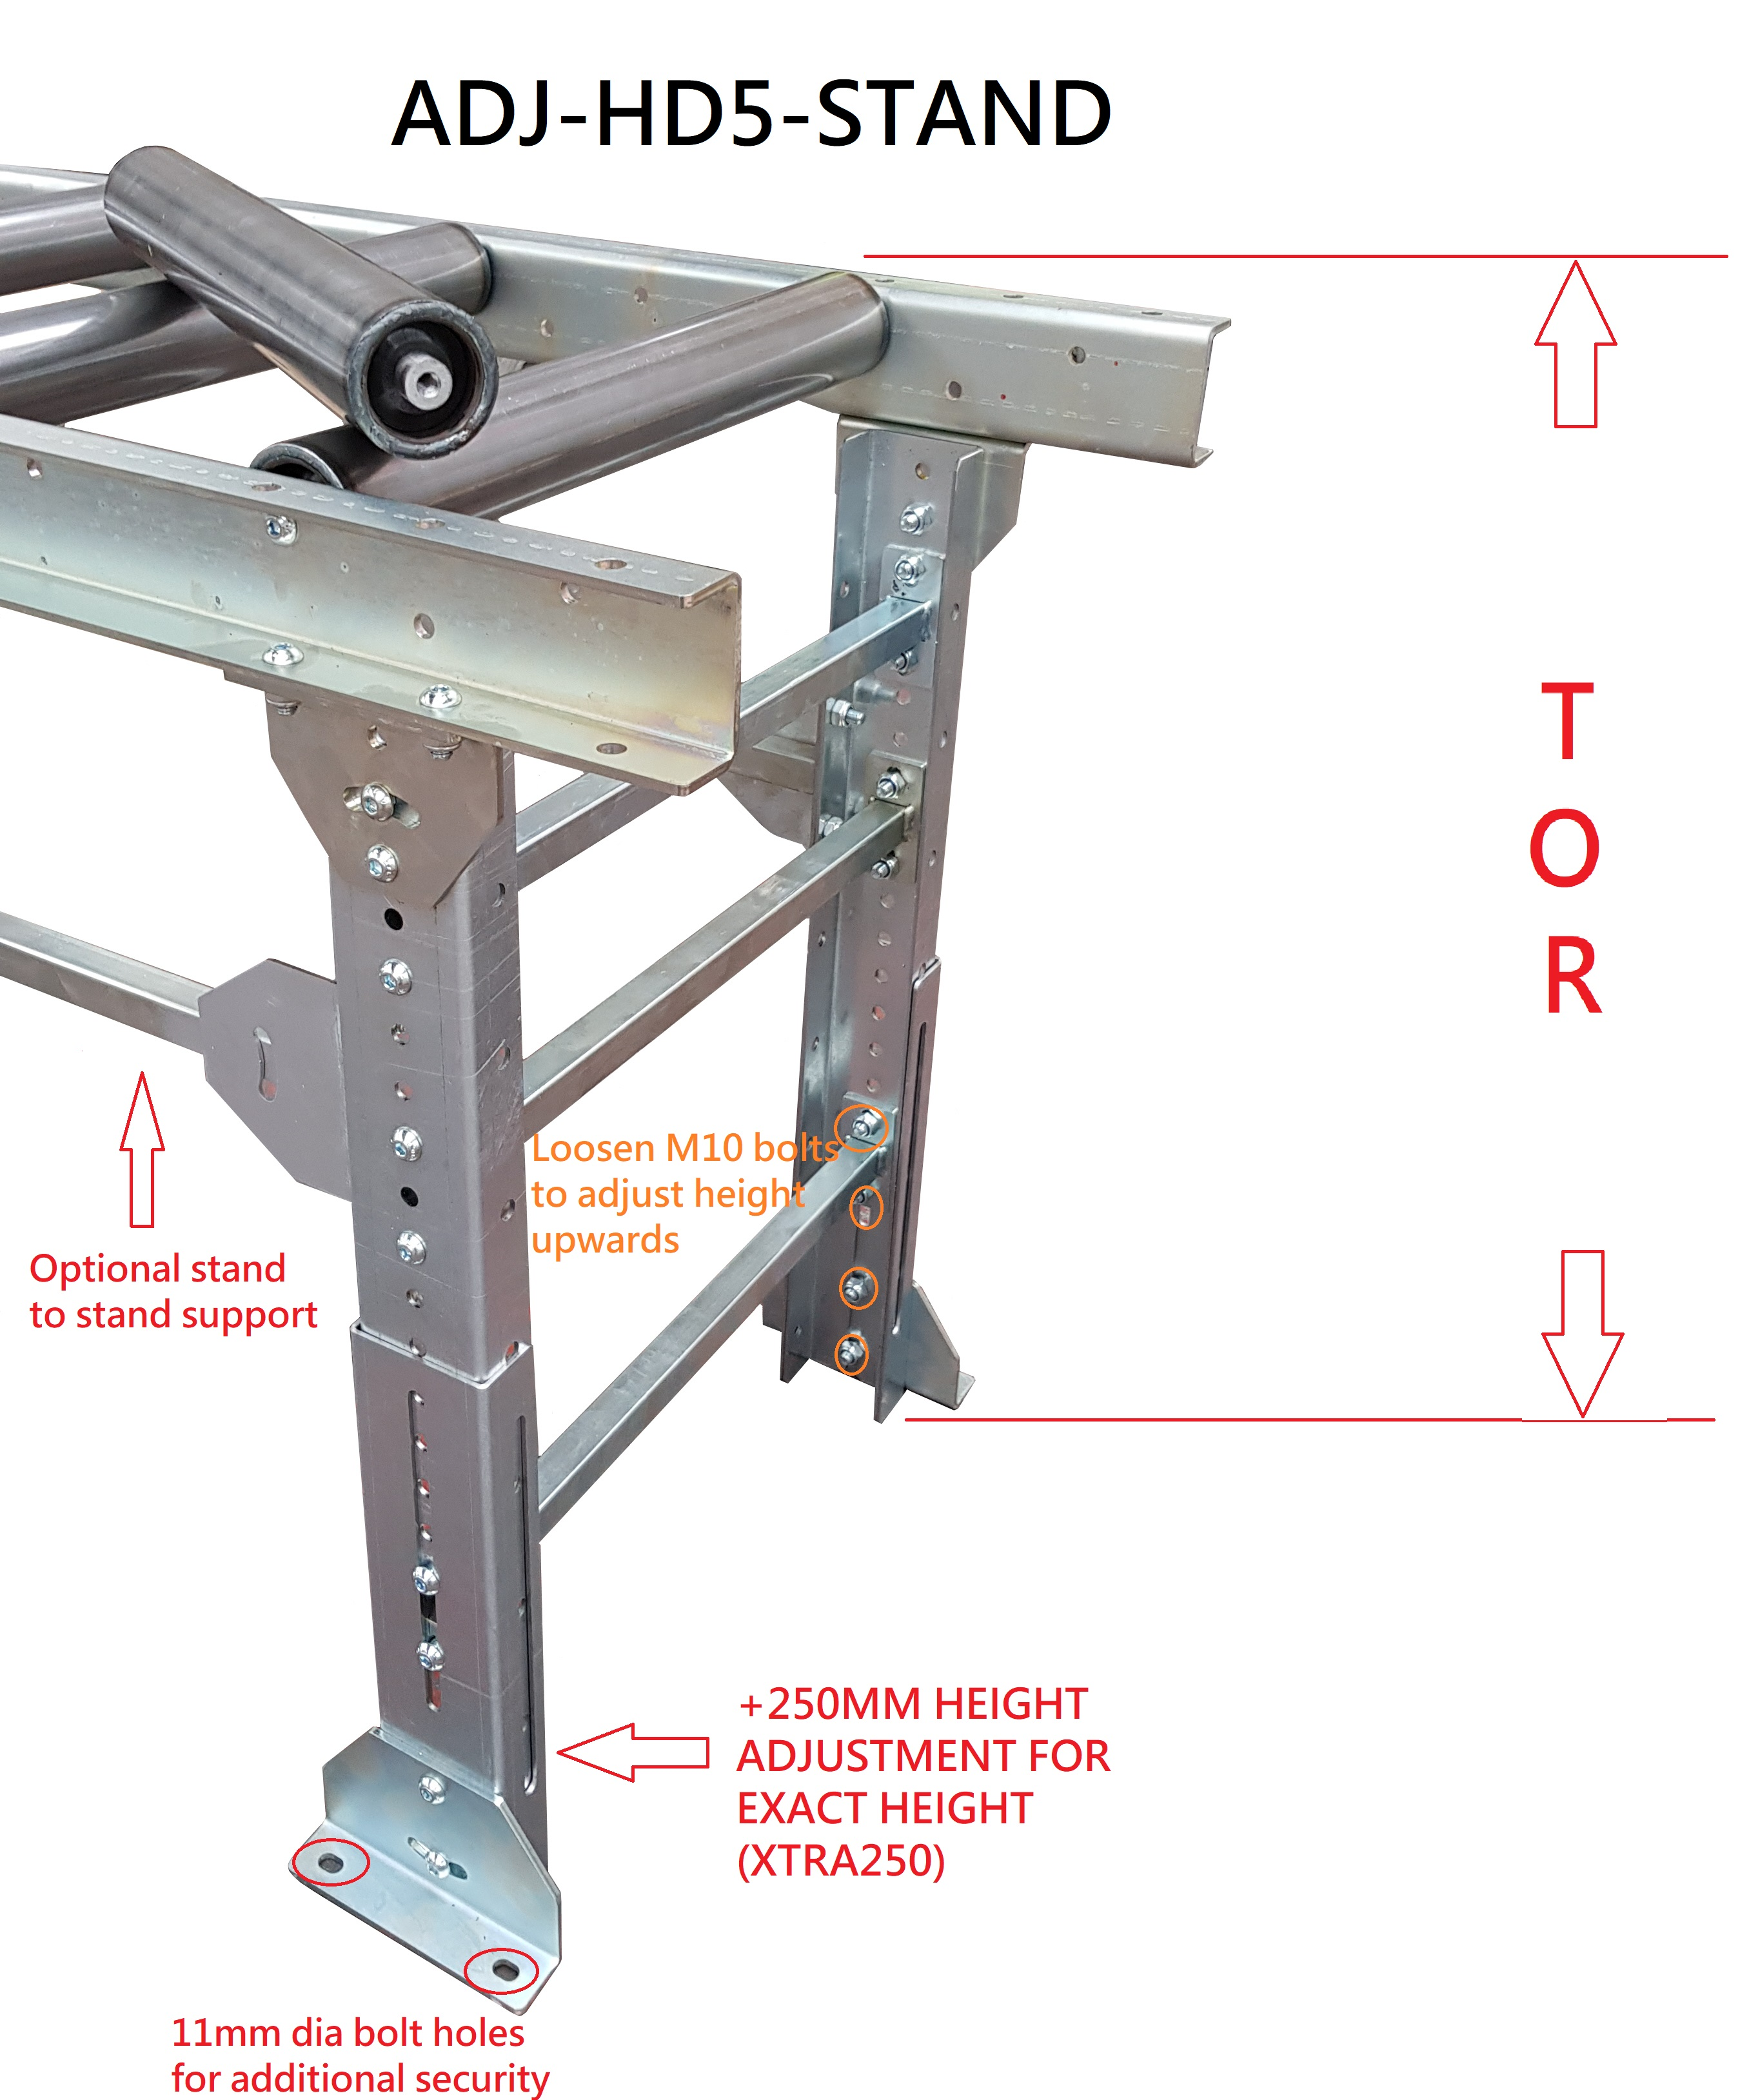 ADJ-HD5 Heavy duty Conveyor stand - <750 KGS